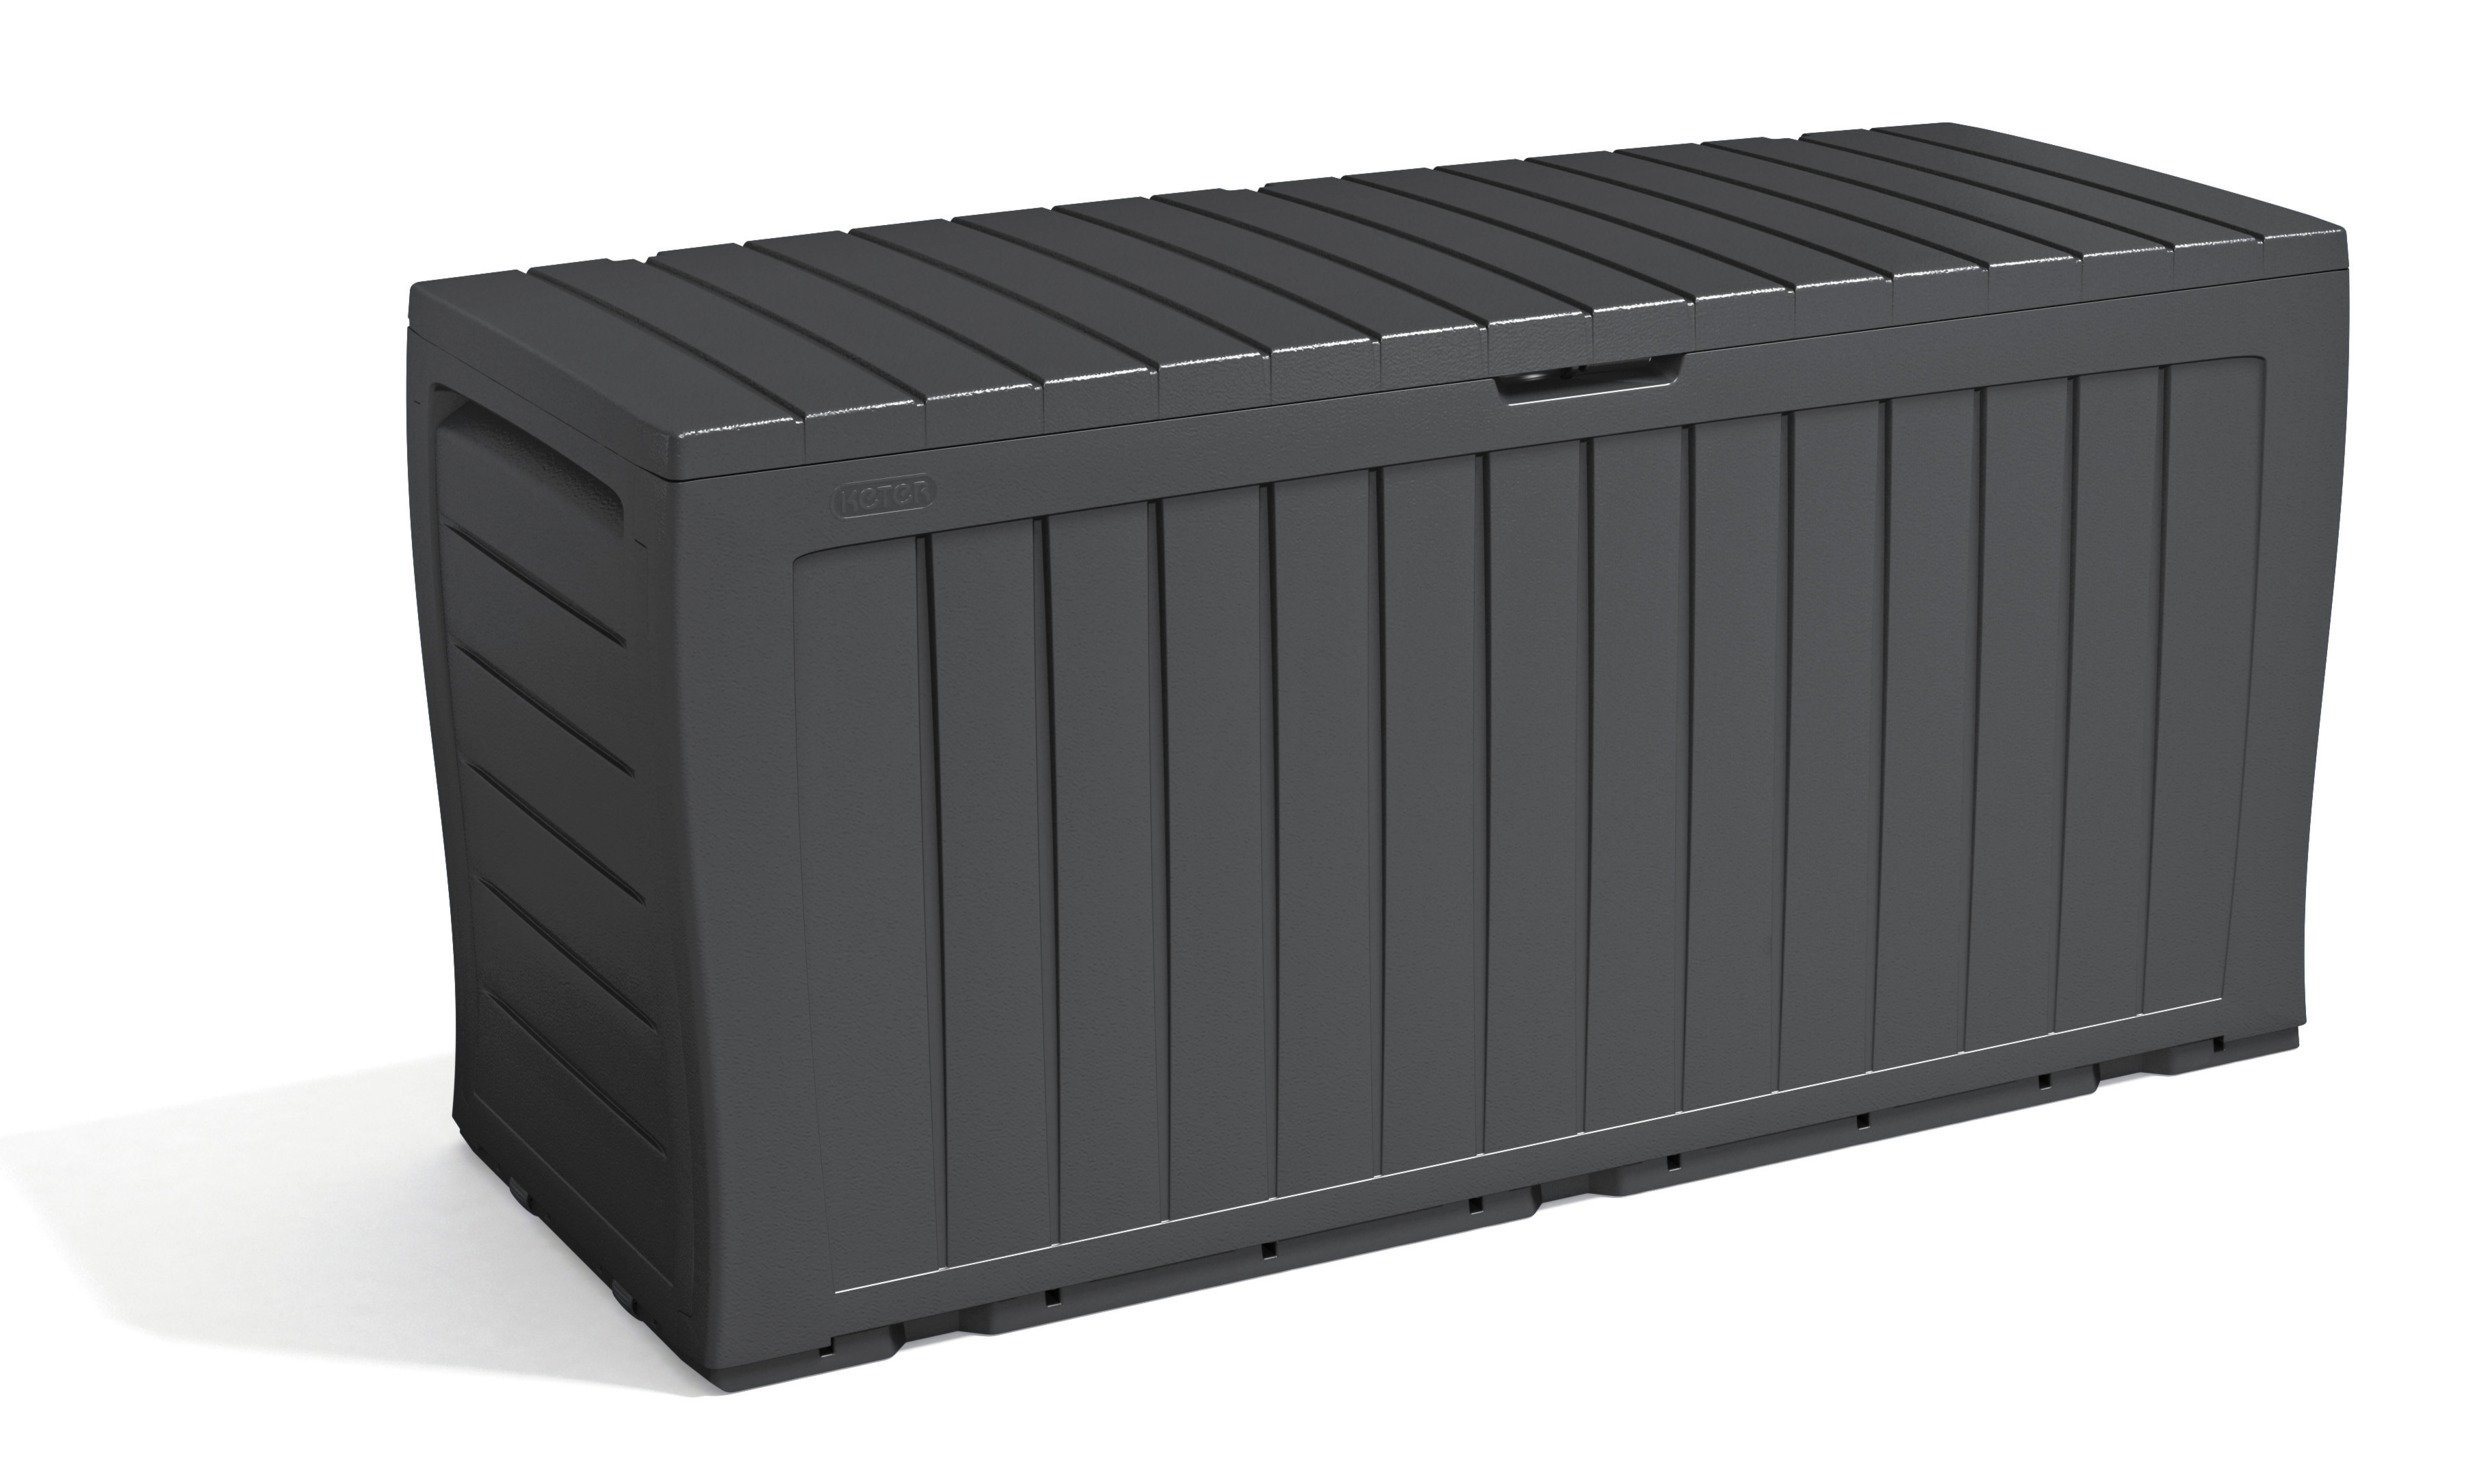 Keter Wood Effect Plastic Garden Storage Box Grey For